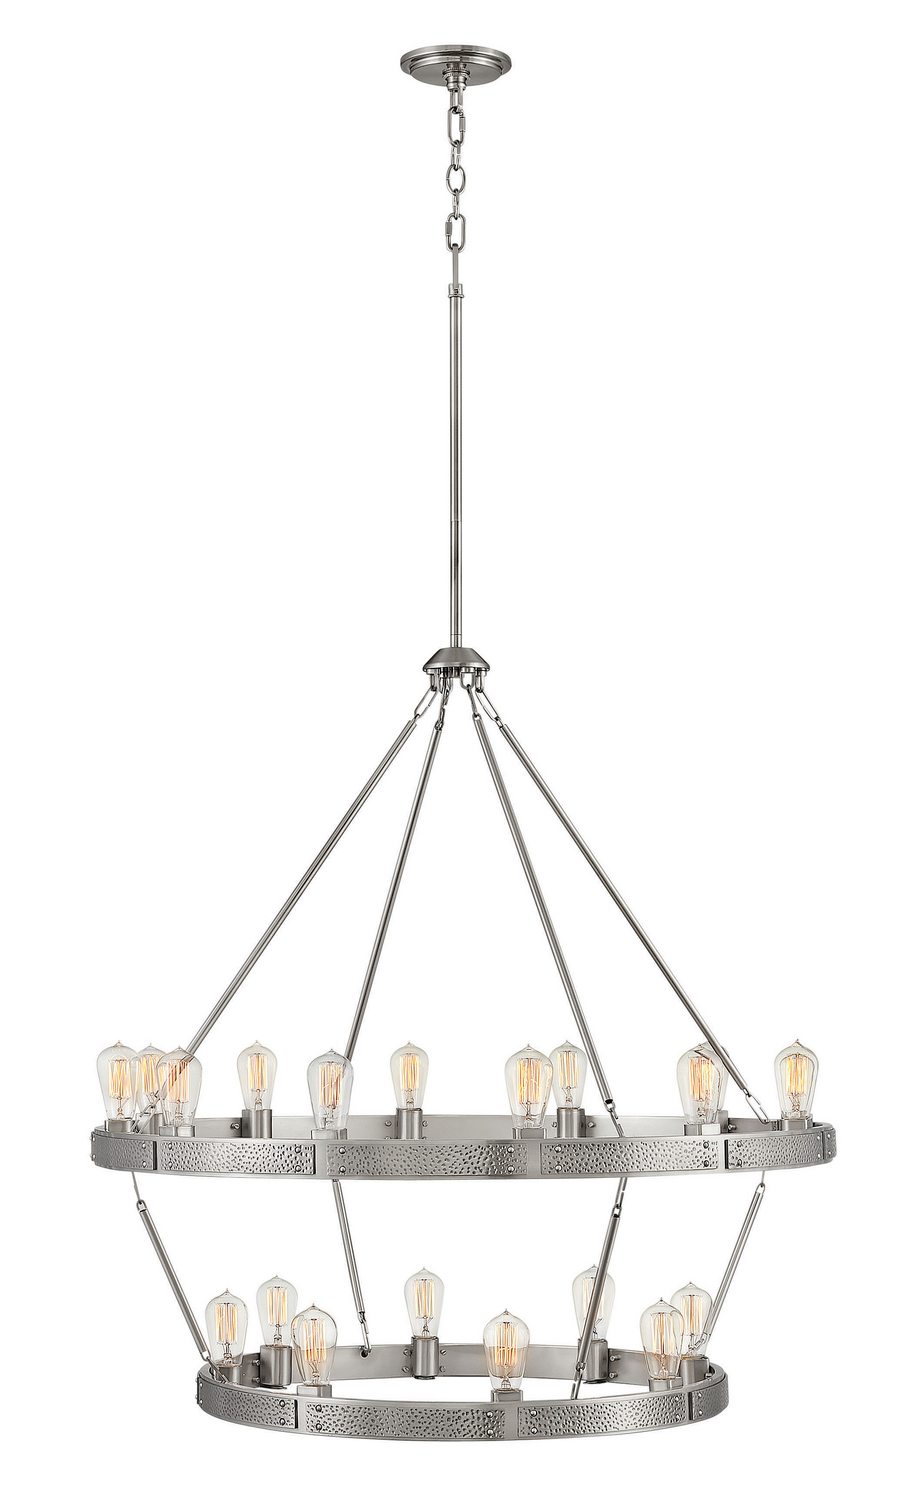 20 Light Chandelier from the Everett collection by Hinkley 4399BN